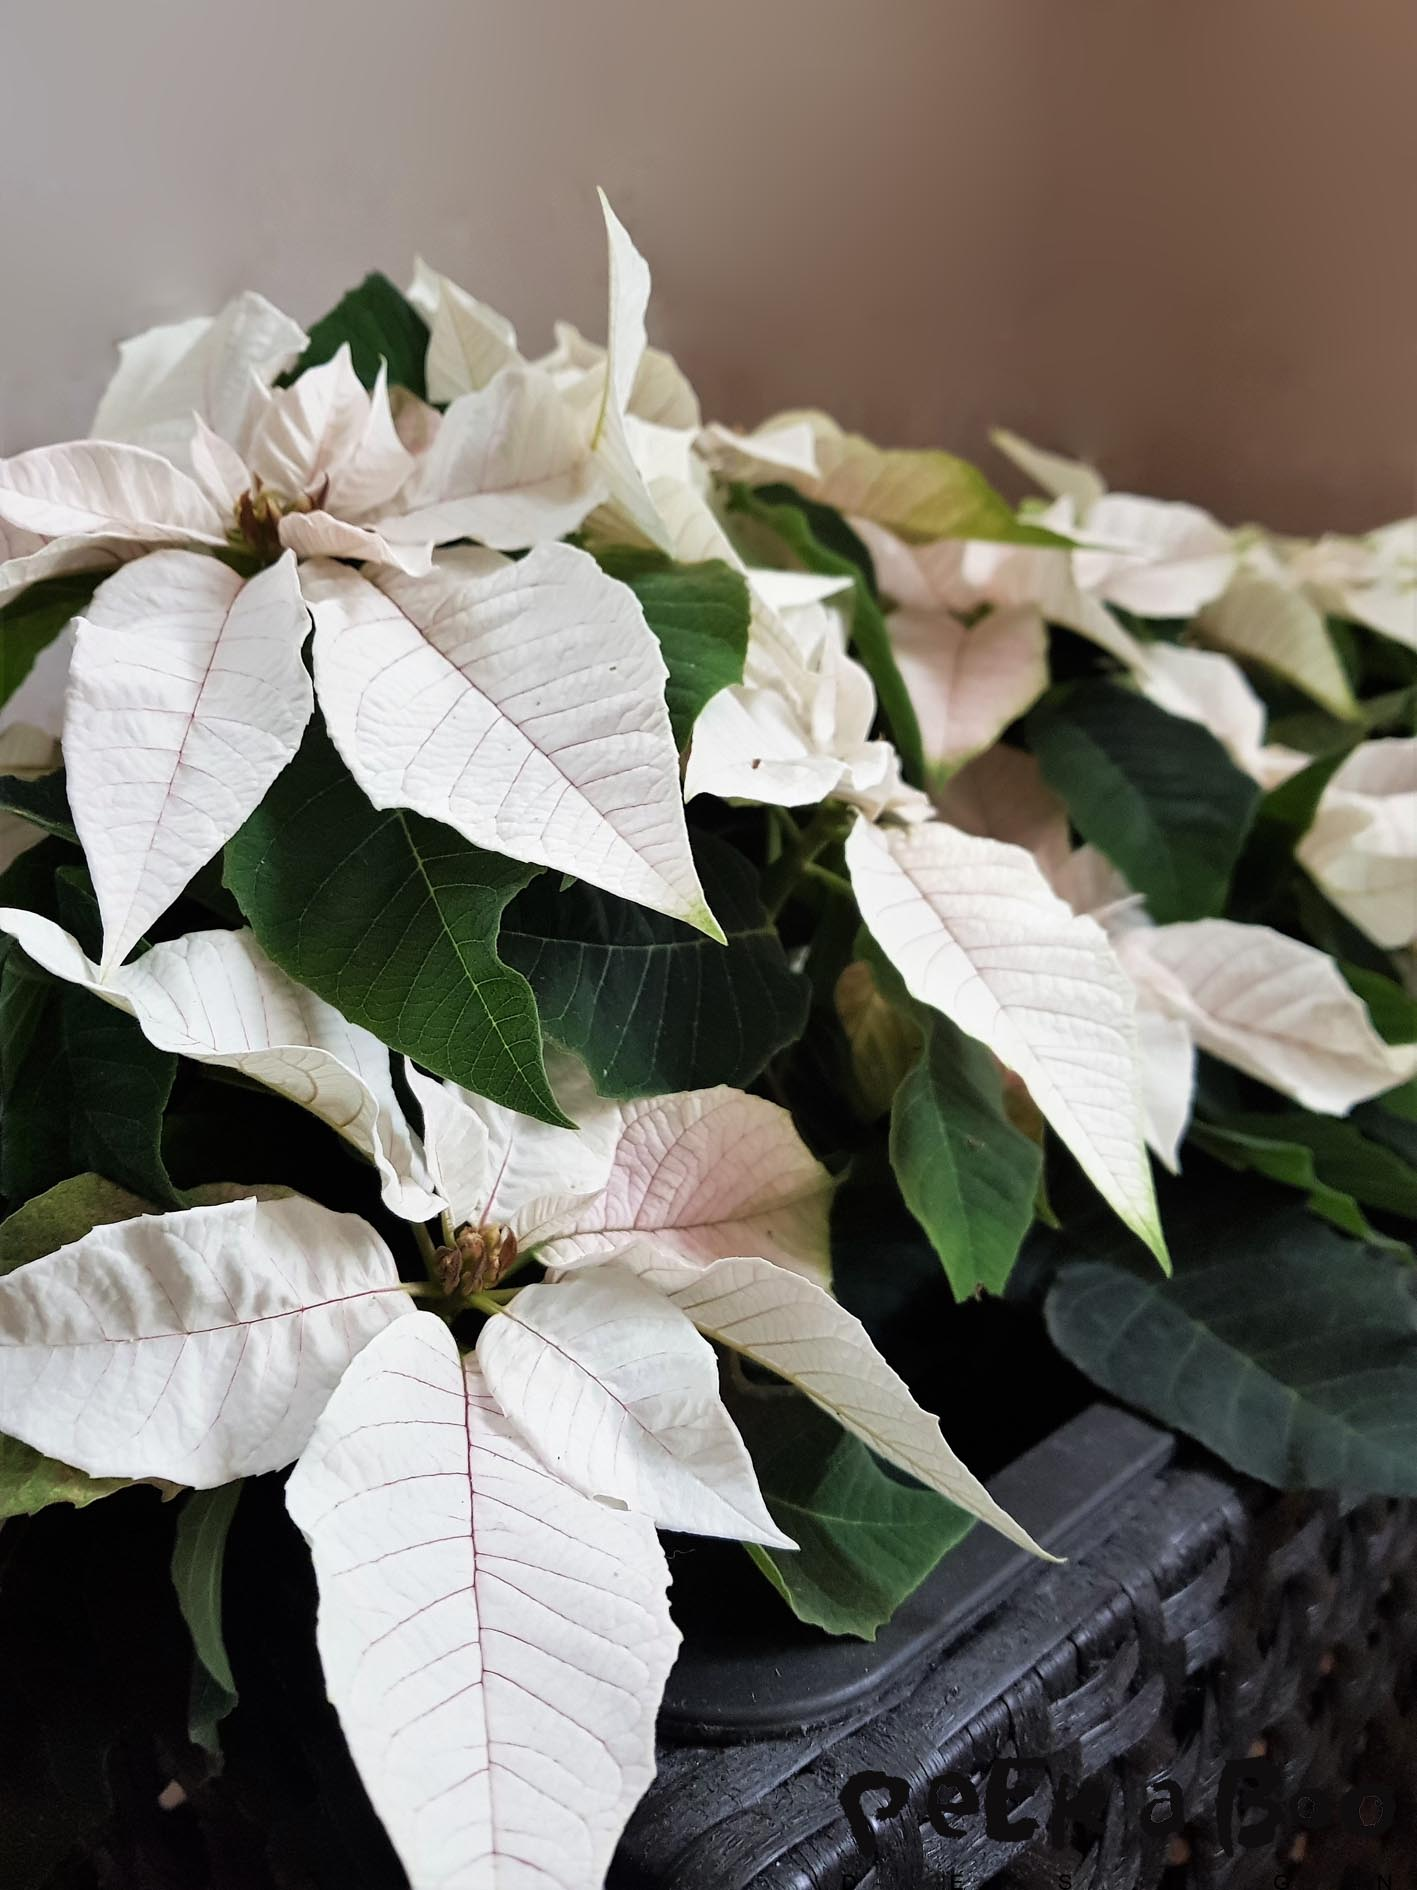 The white poinsettia is not JUST white, it has got a lot of other huges...turning into a pale rose and green.